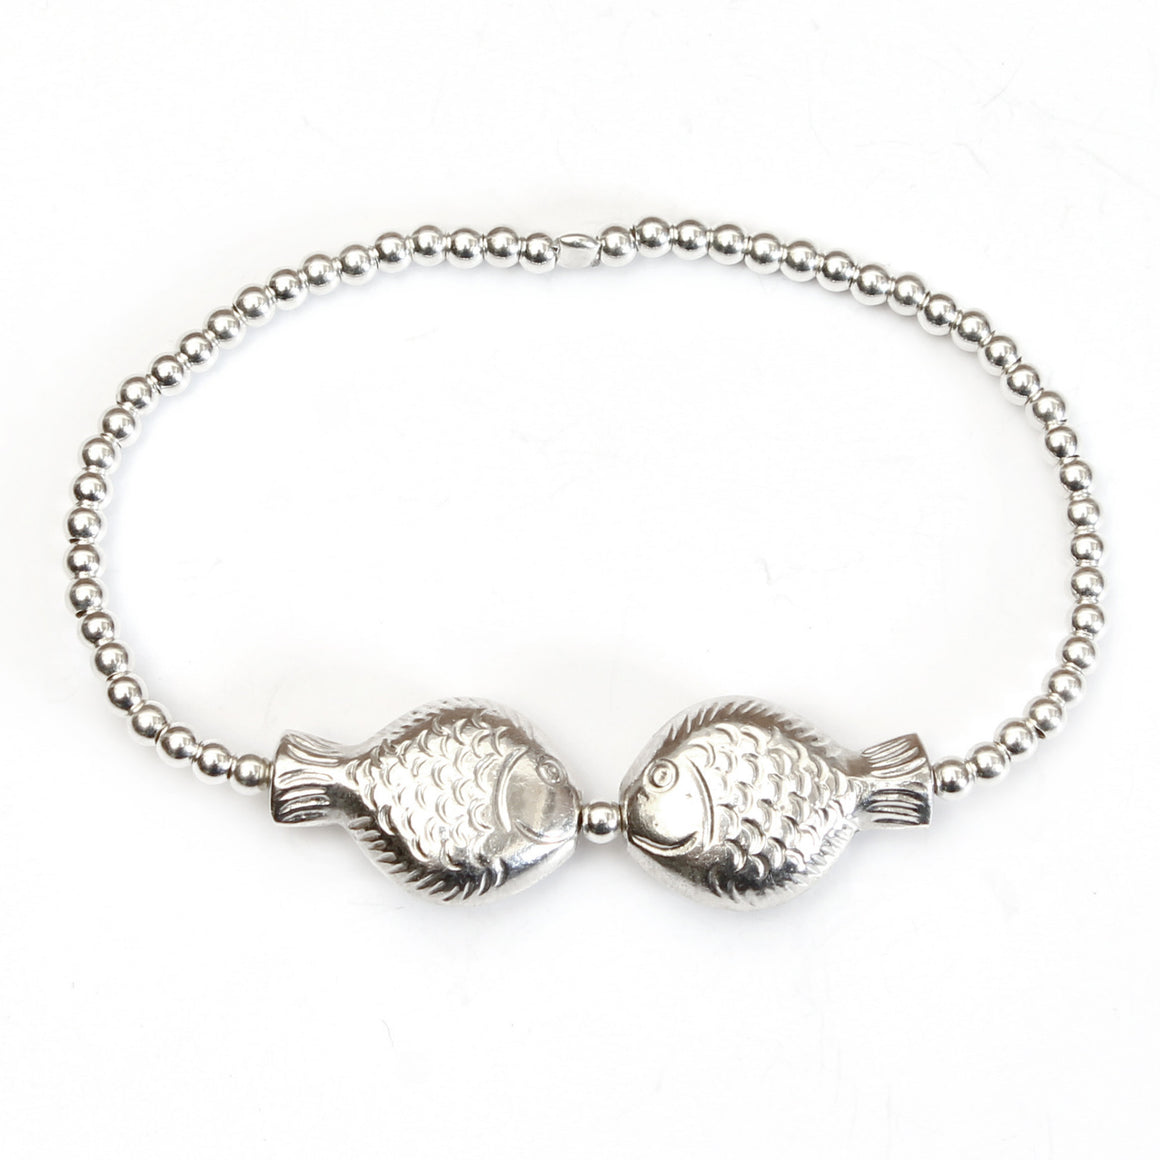 Joyful Fish Beads Bracelet - good charma